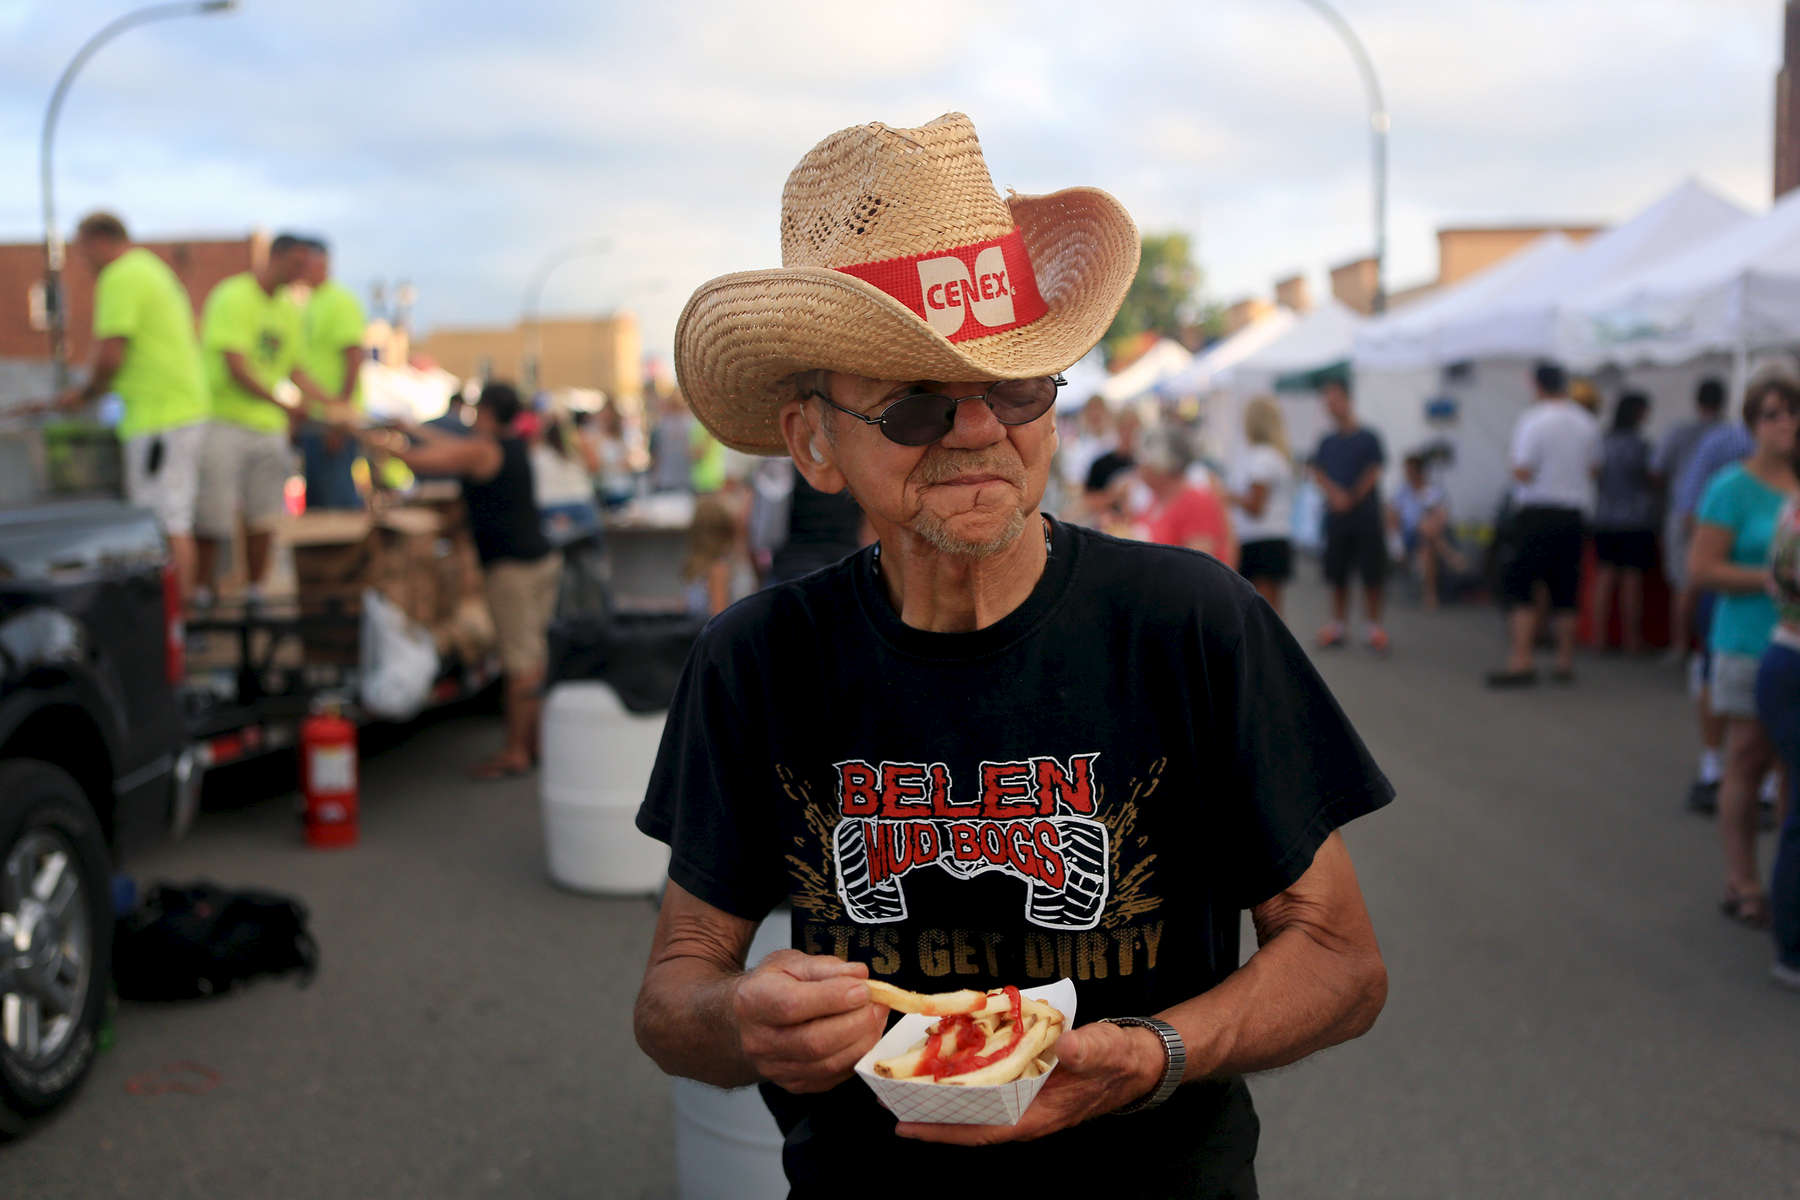 Marlo Nordlund of Elbow Lake, Minn. enjoys a basket of french fries during Potato Days in Barnesville, Minn.